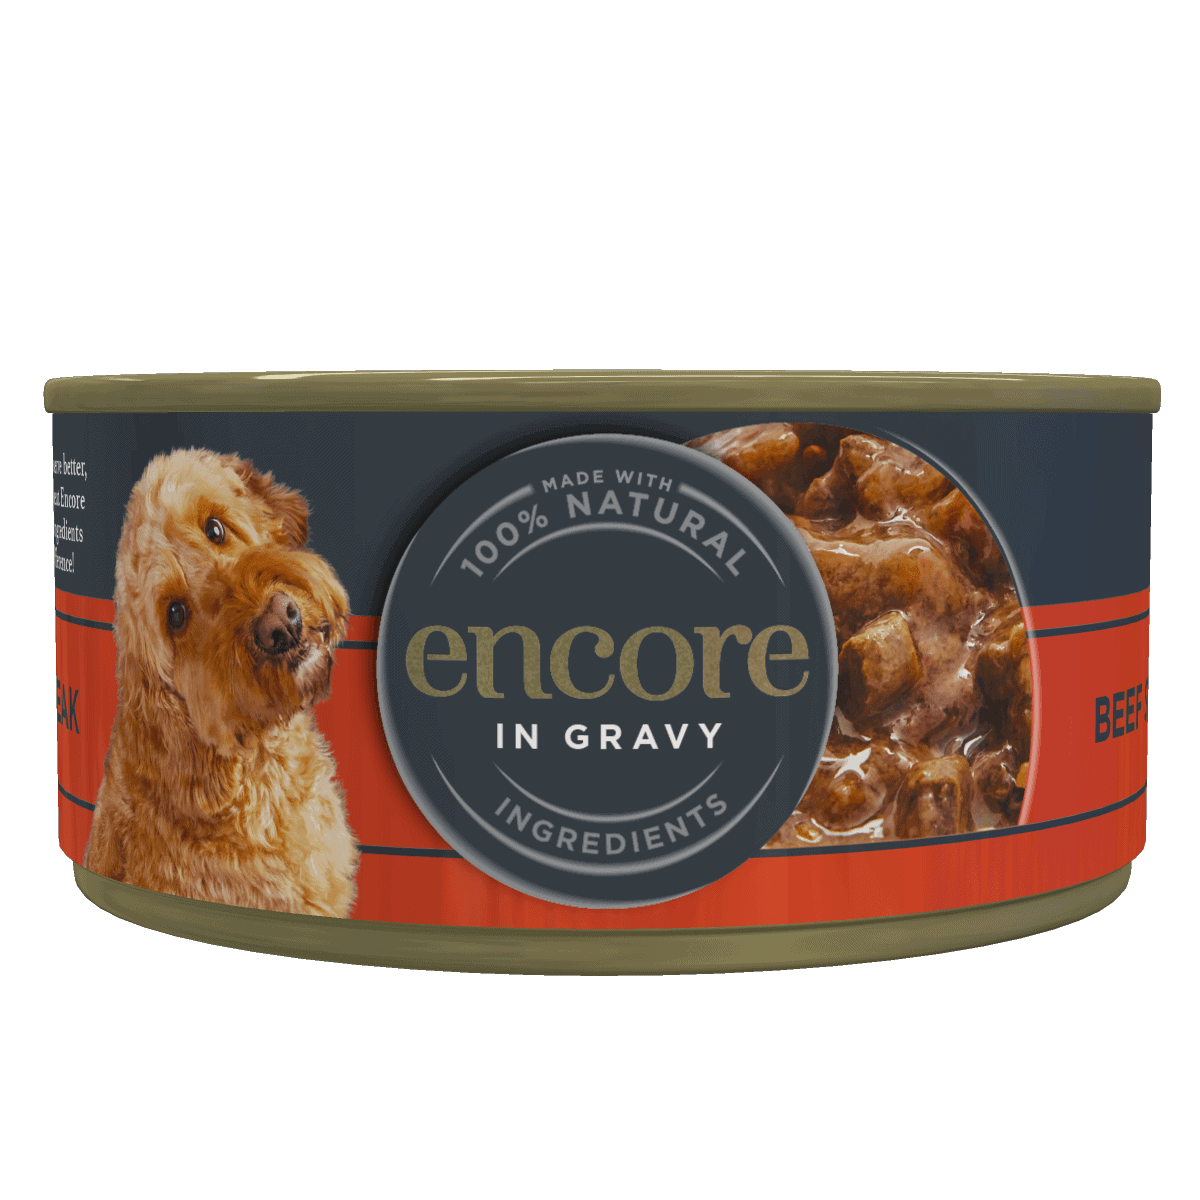 Encore Beef steak in gravy 156g tin